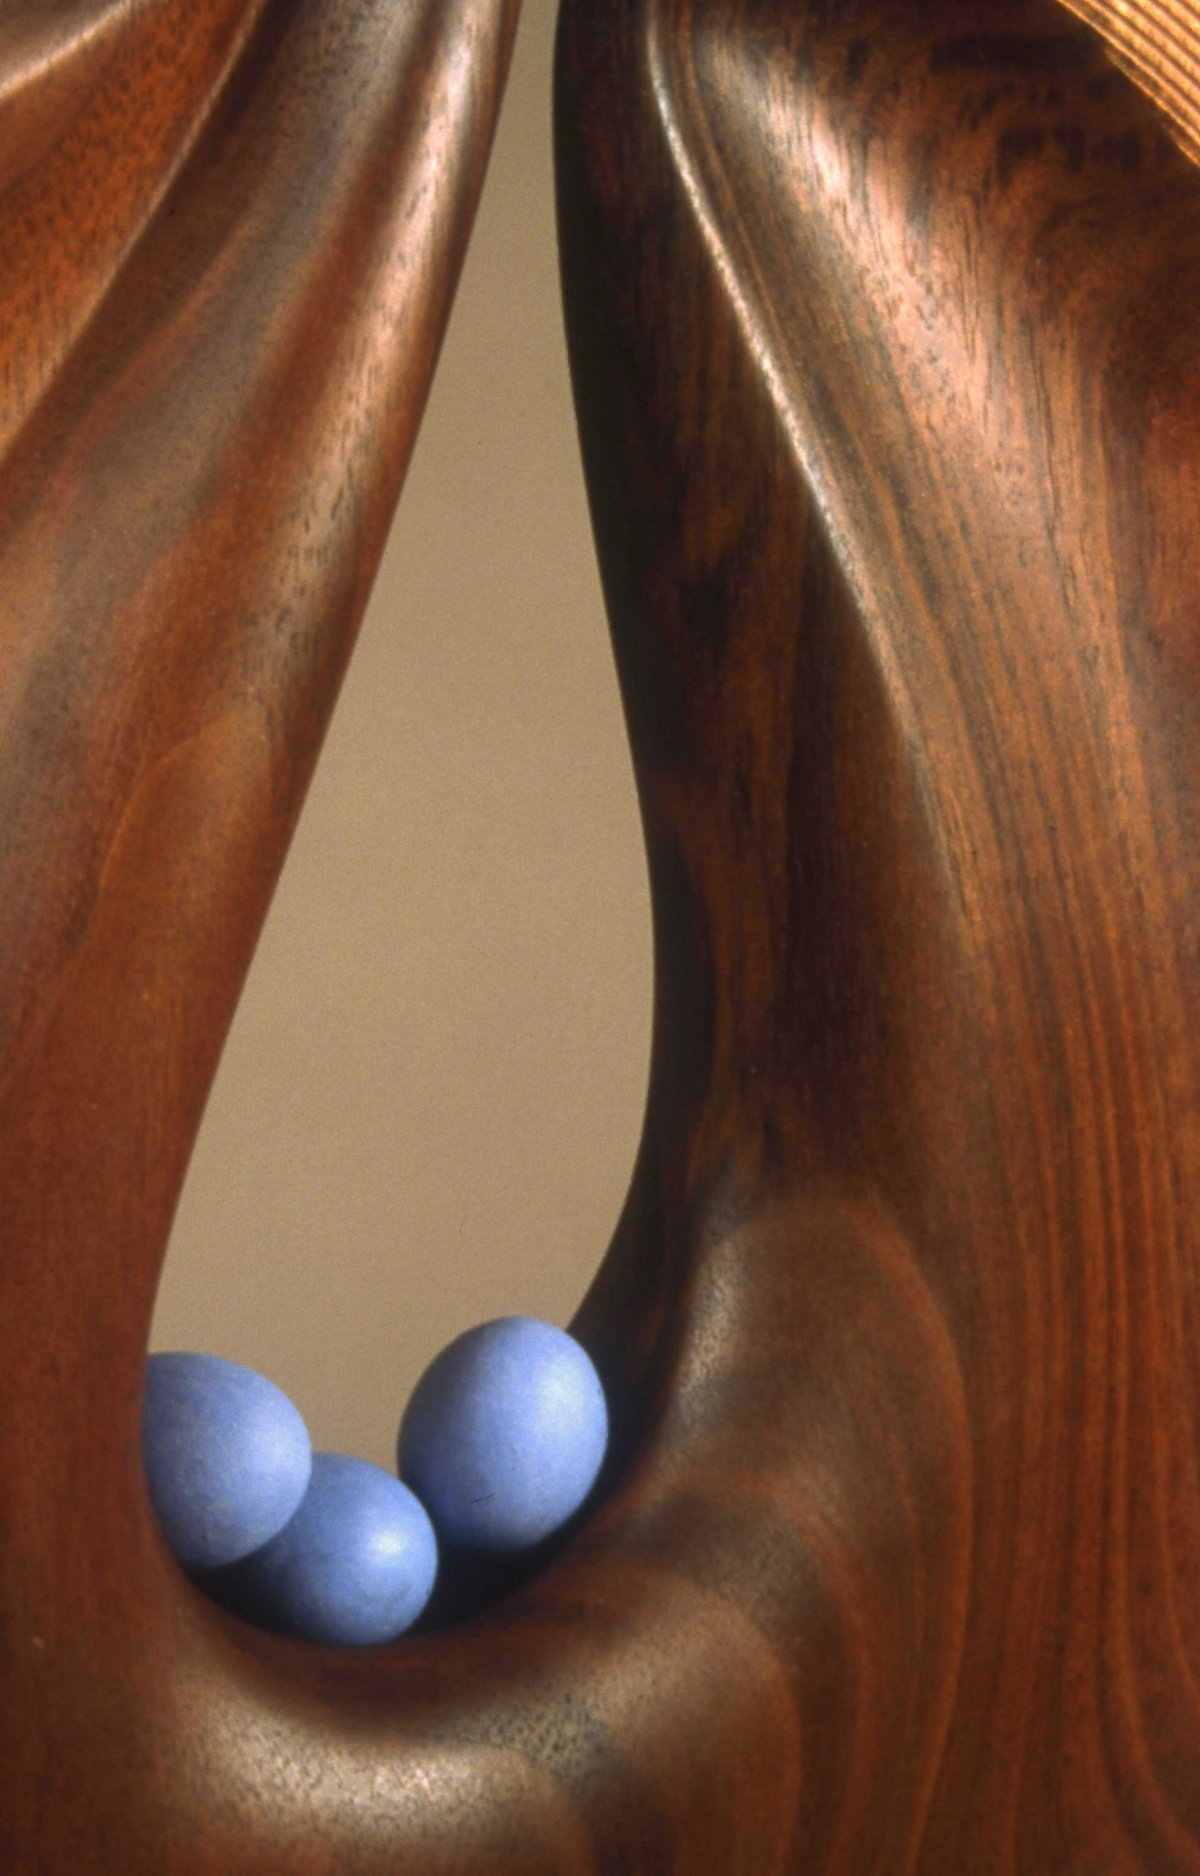 Bearing Blue Eggs (detail) by Betty Scarpino